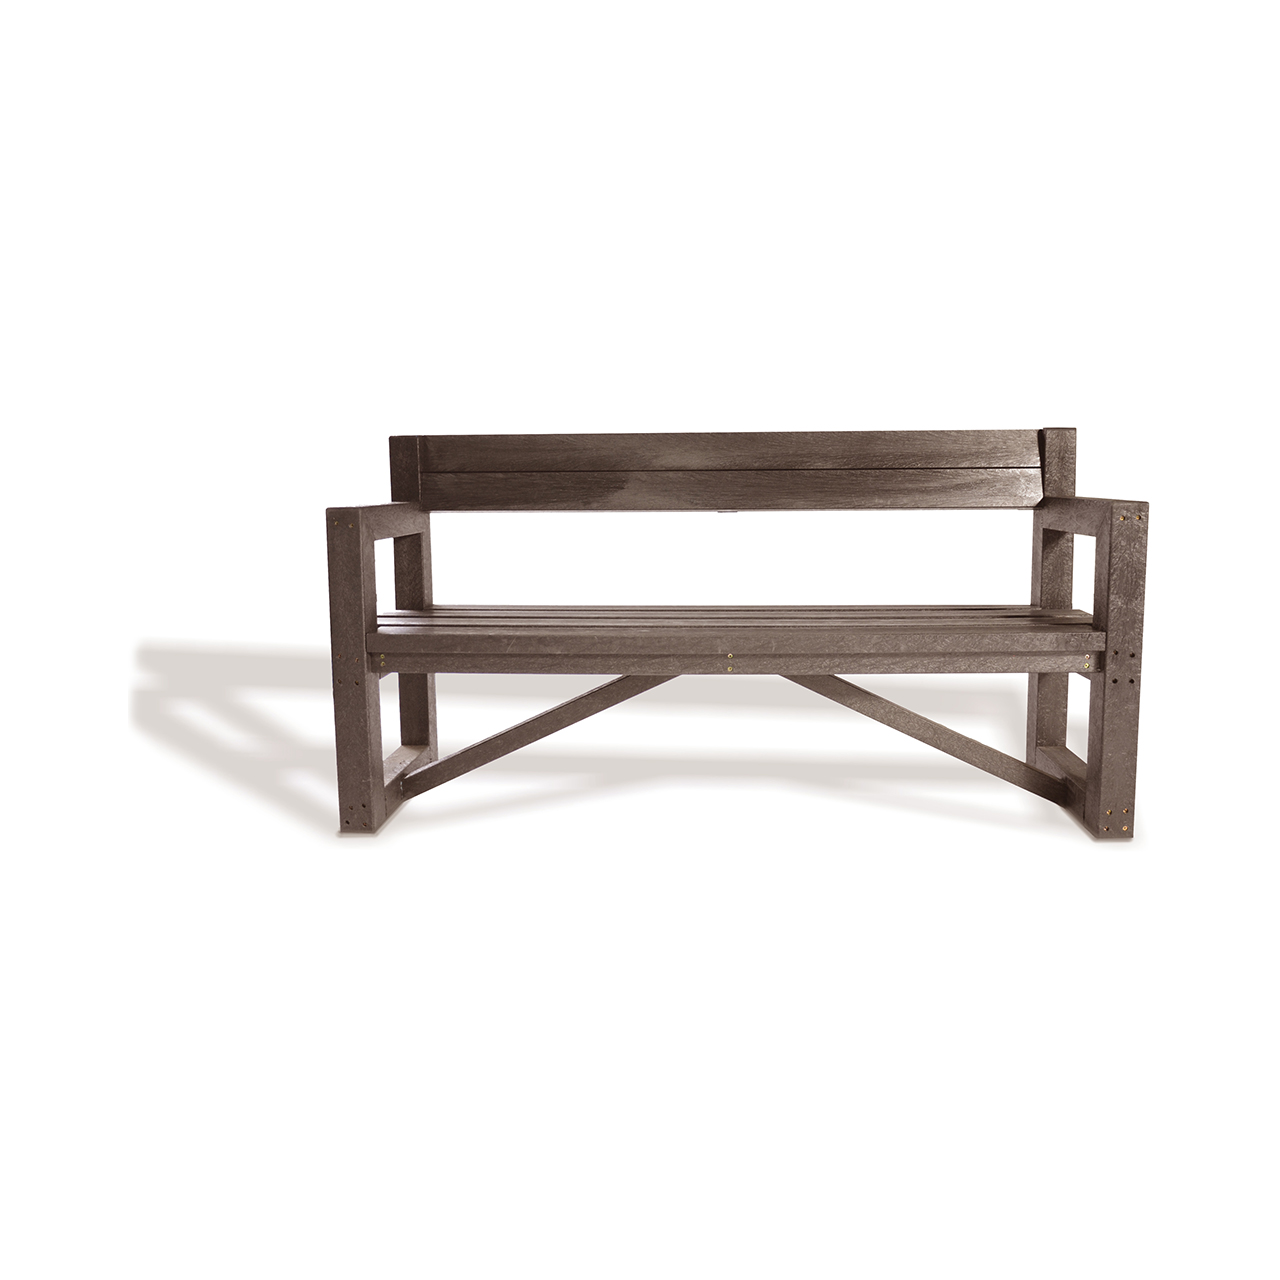 Plaswood Our City Bench Fully Assembled 1700mm - Brown image 0